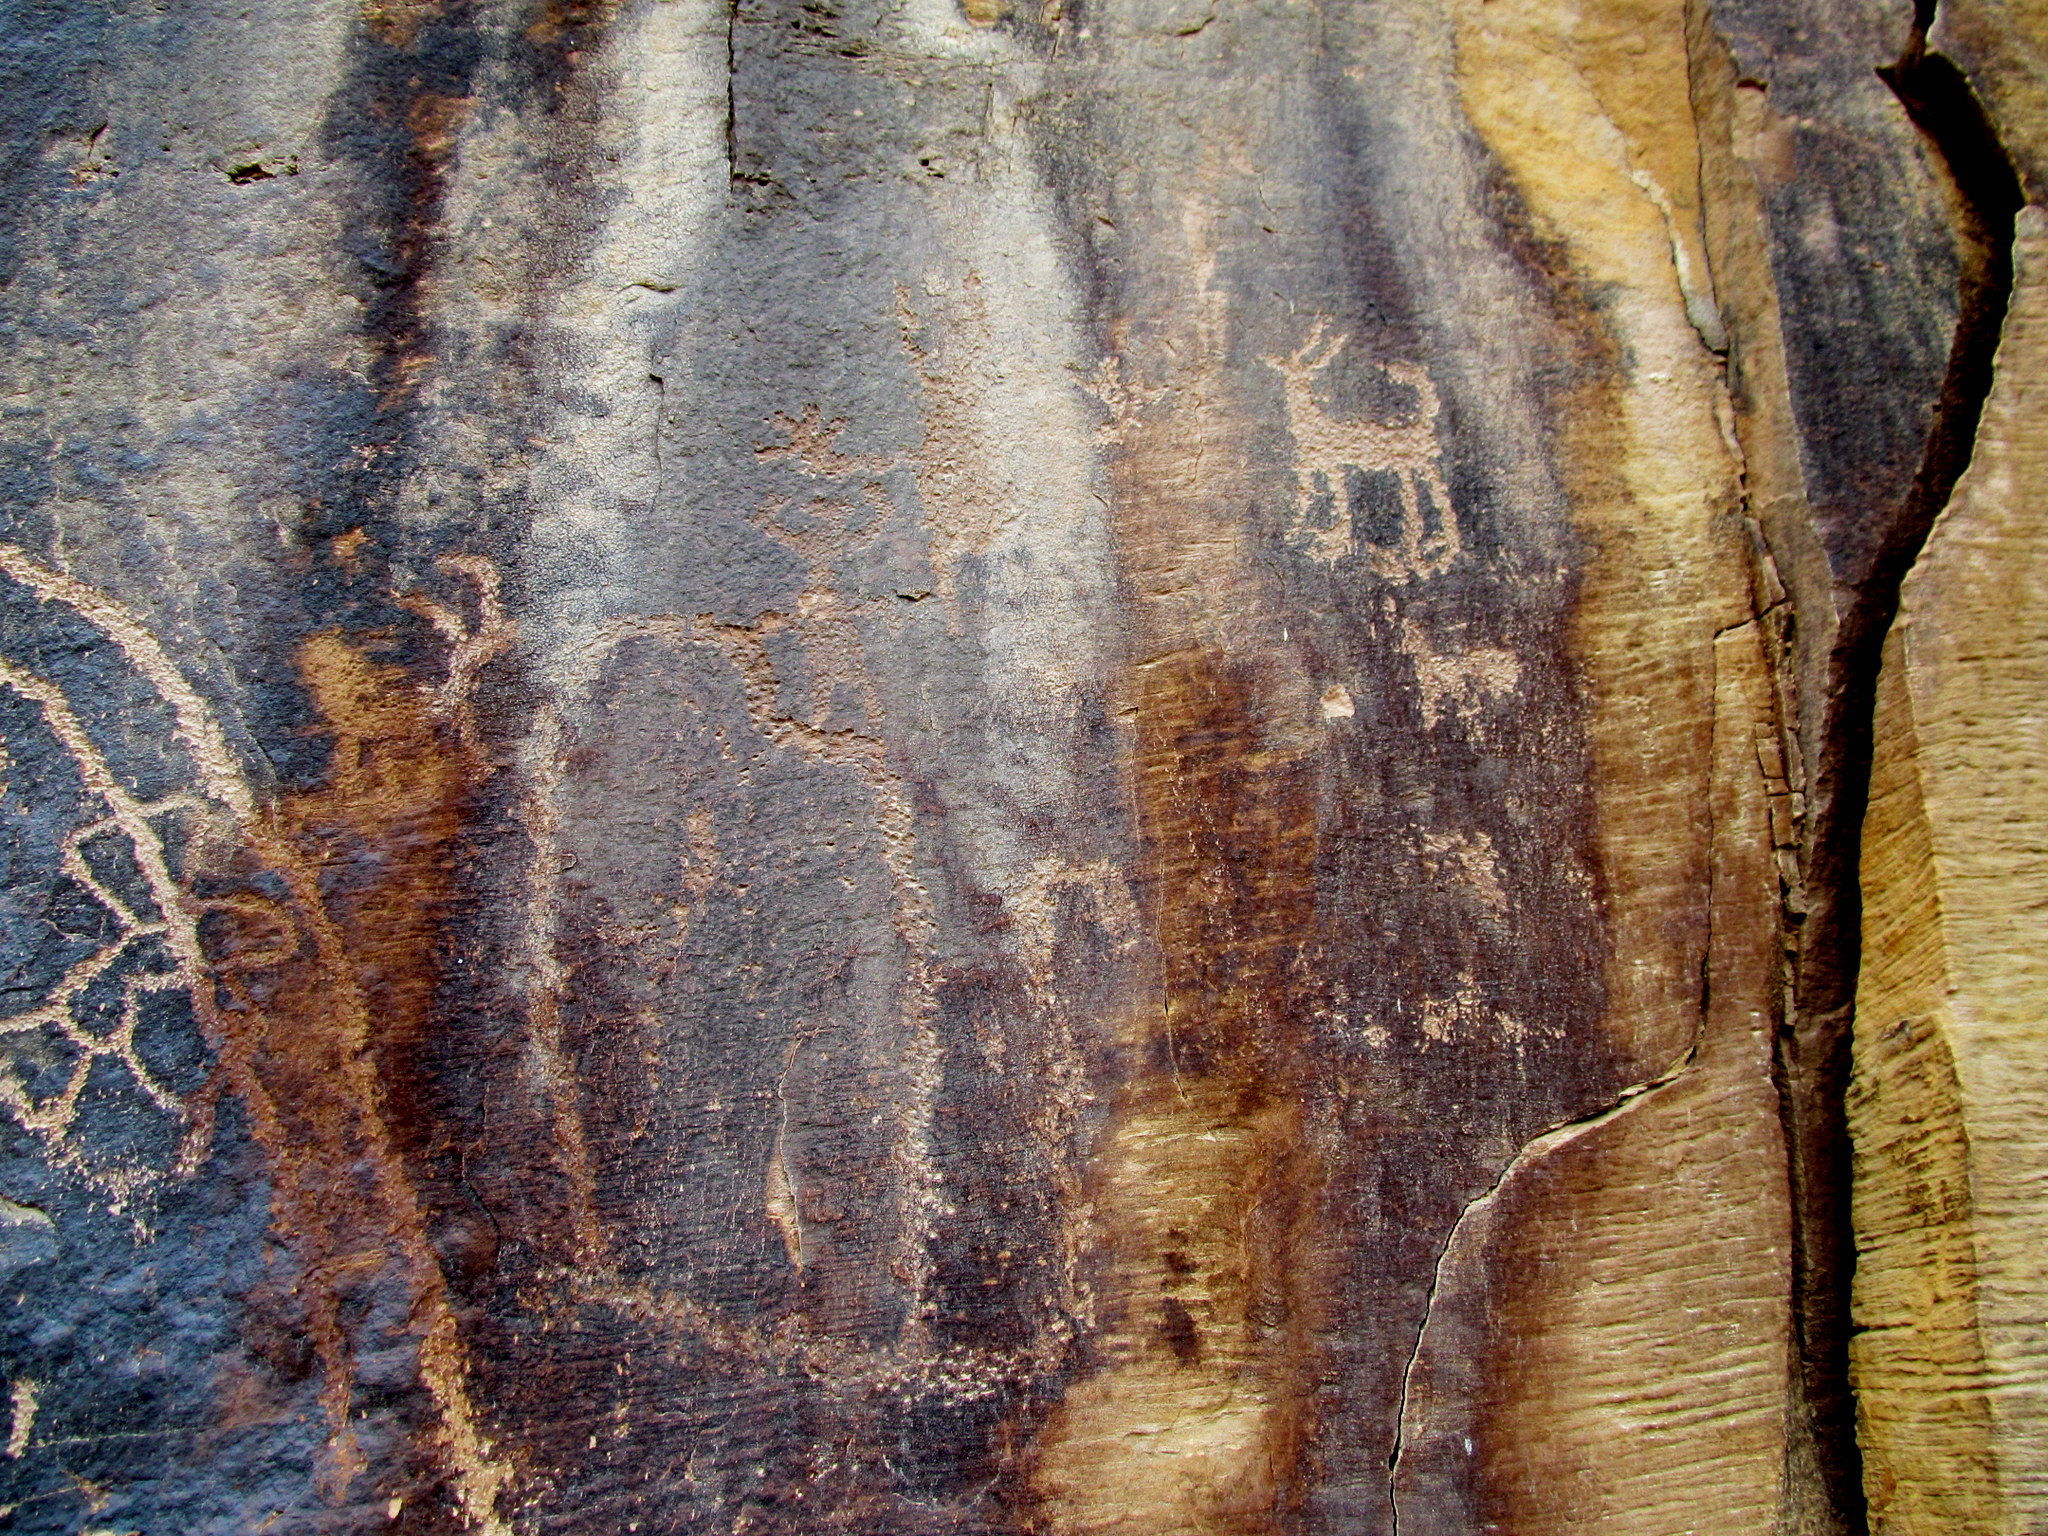 Photo: Petroglyph figures, including a canine